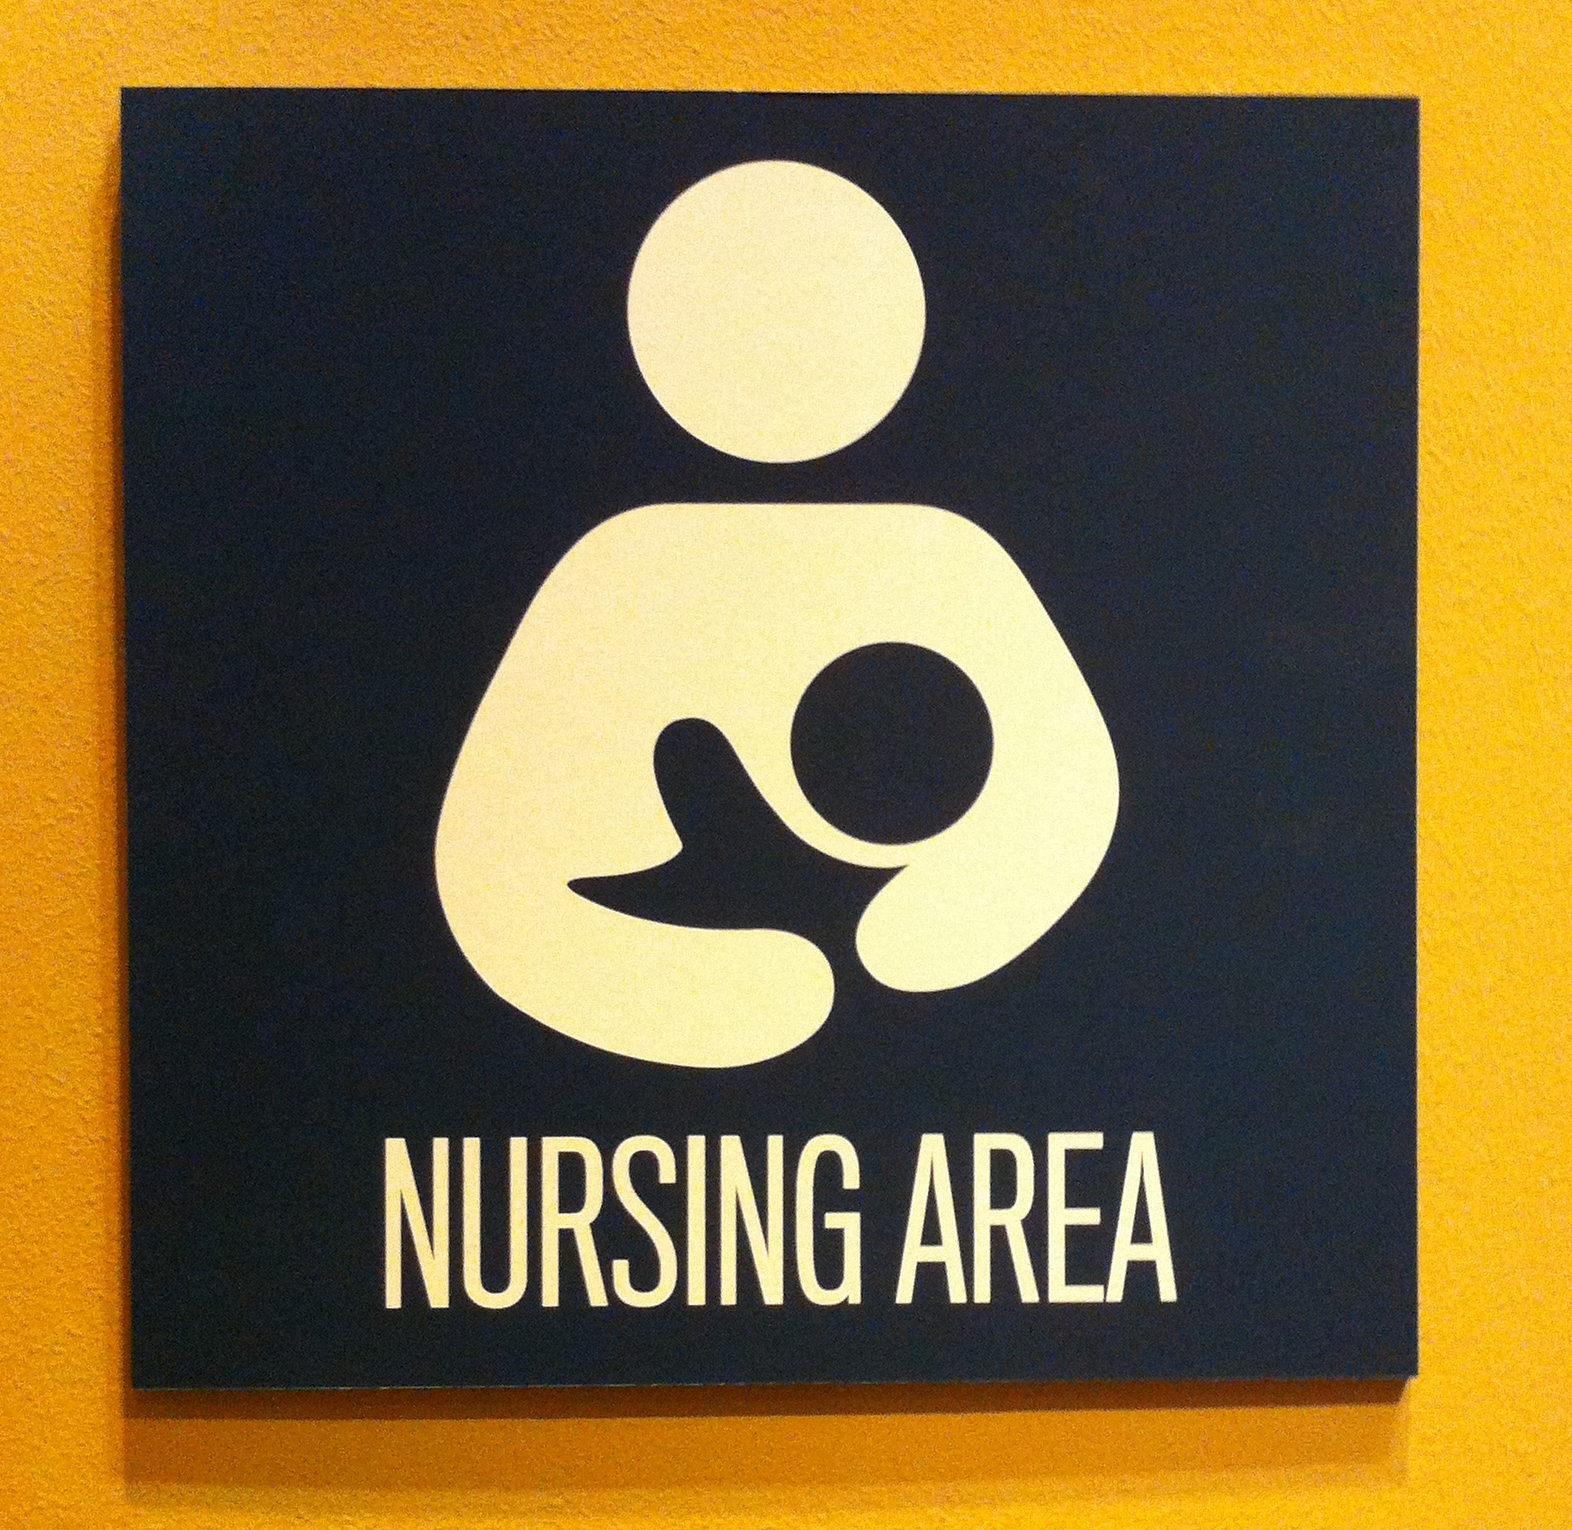 All New Jersey Employers Now Required to Provide Nursing Mothers with Reasonable Accommodations